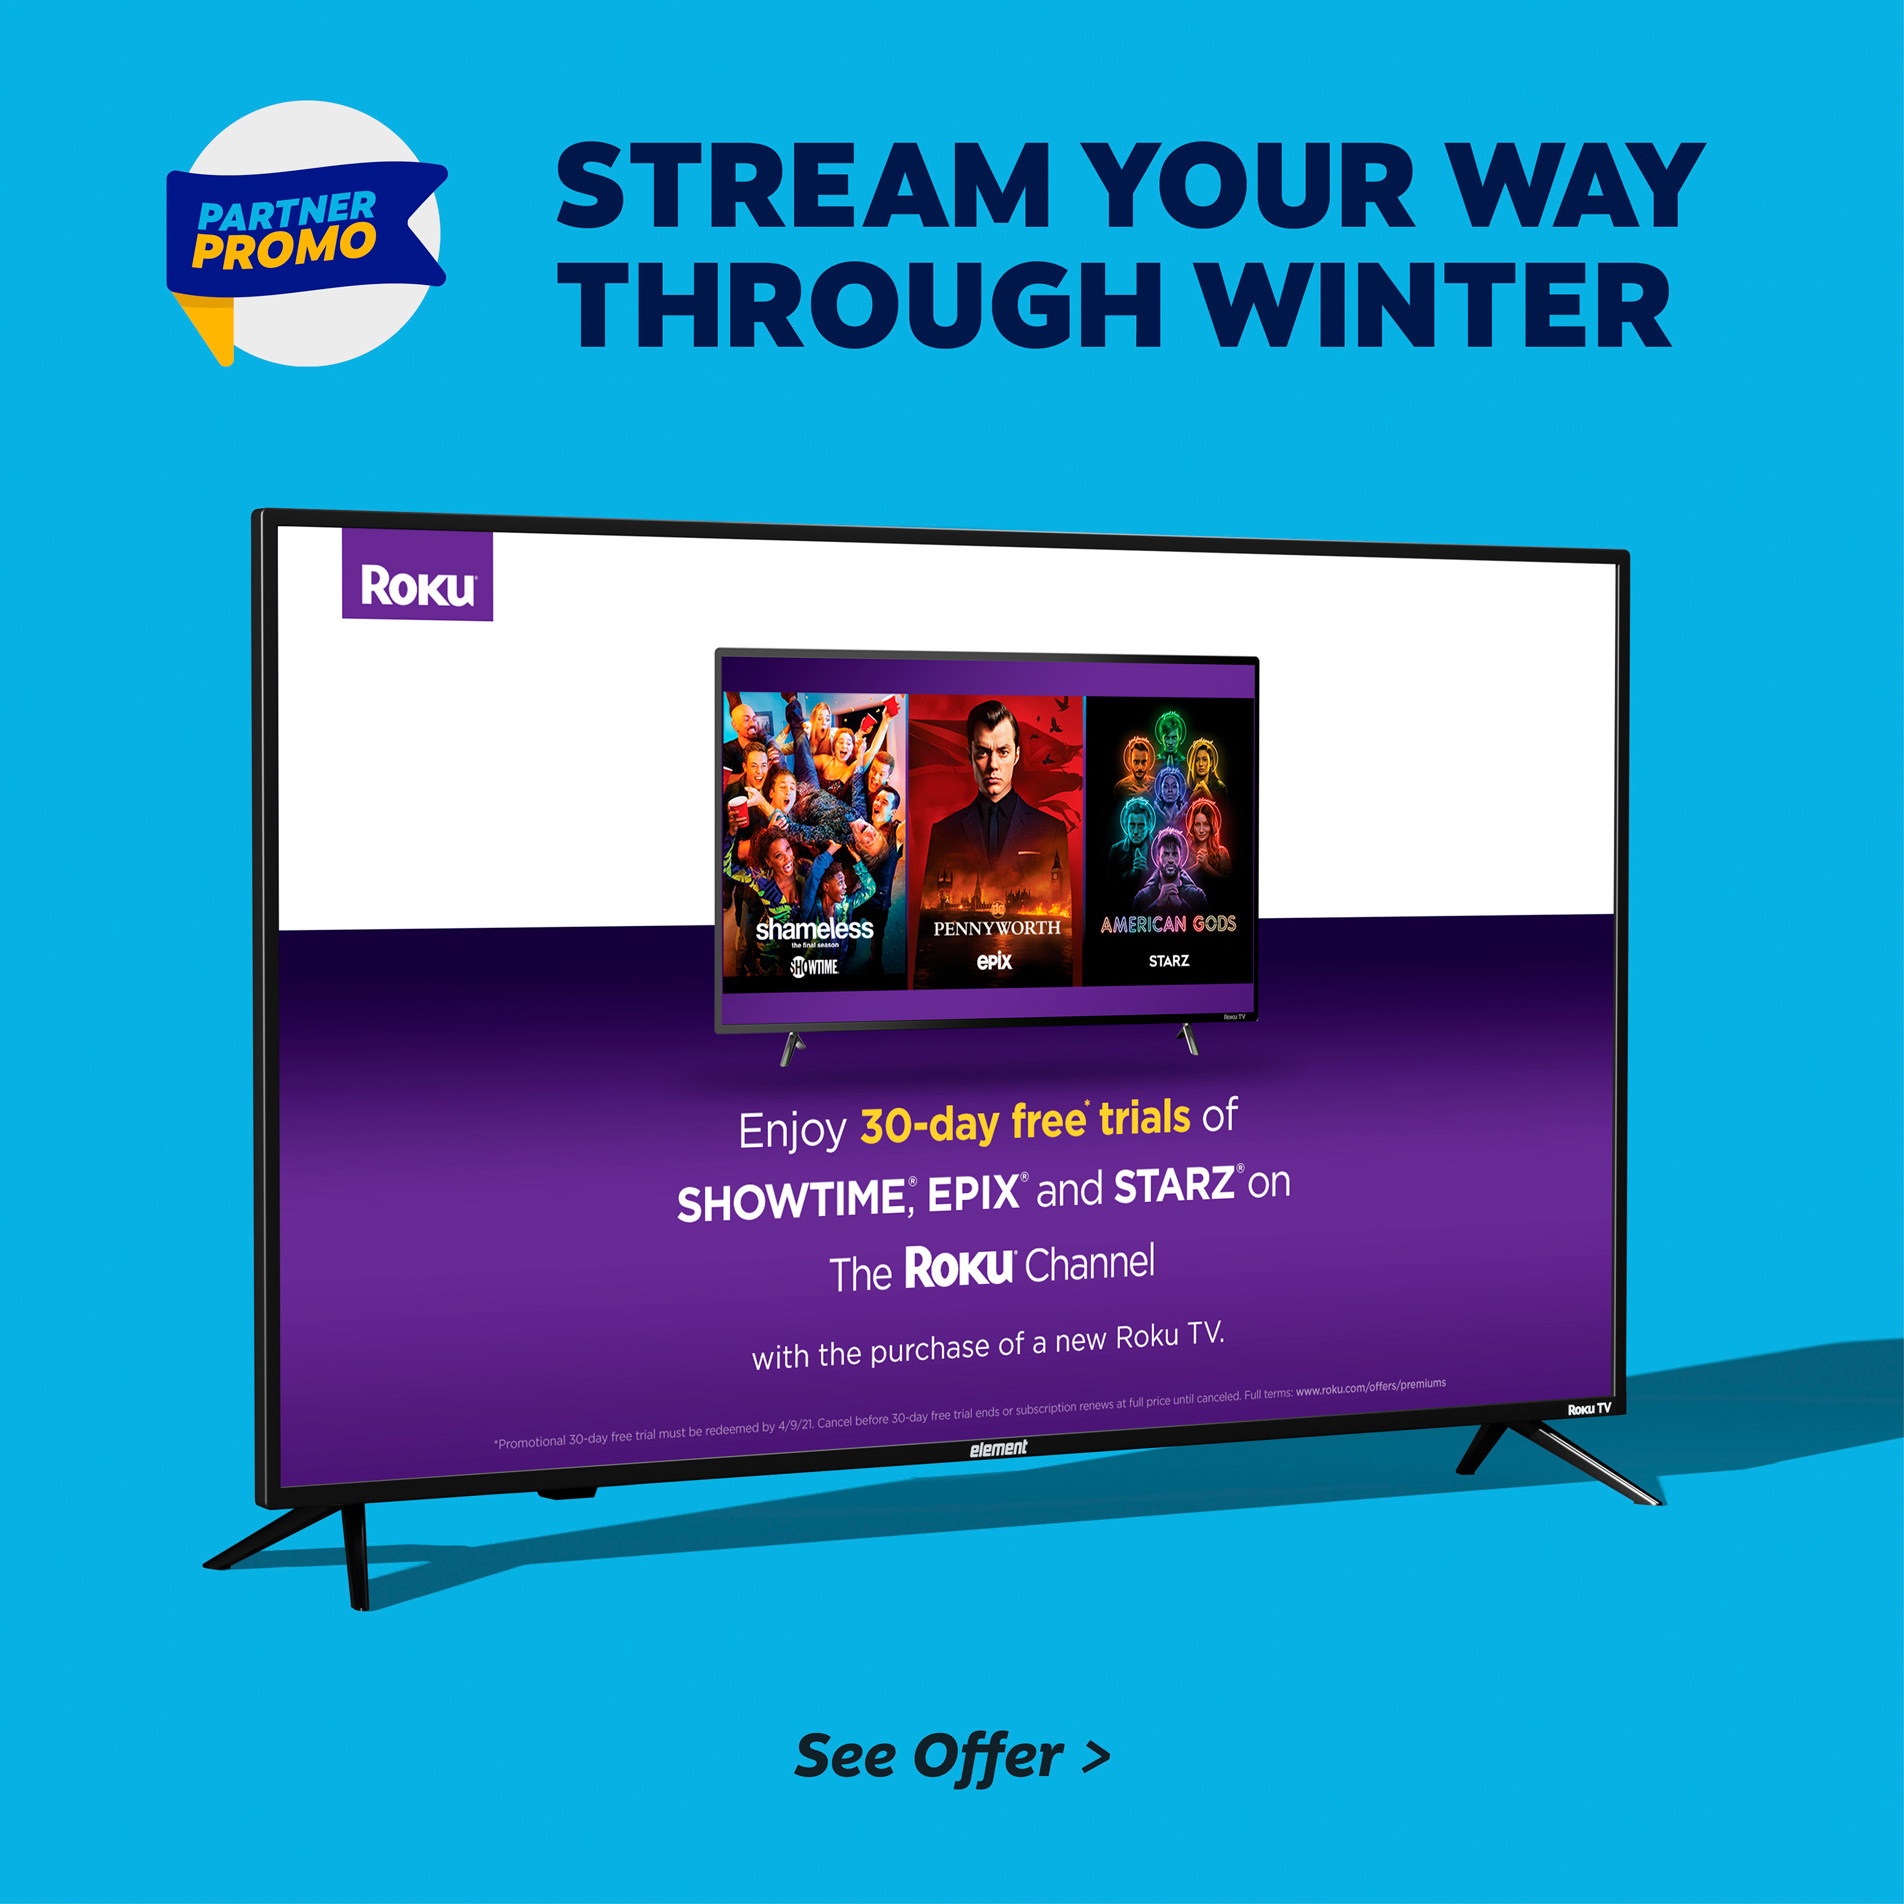 Stream your way through winter